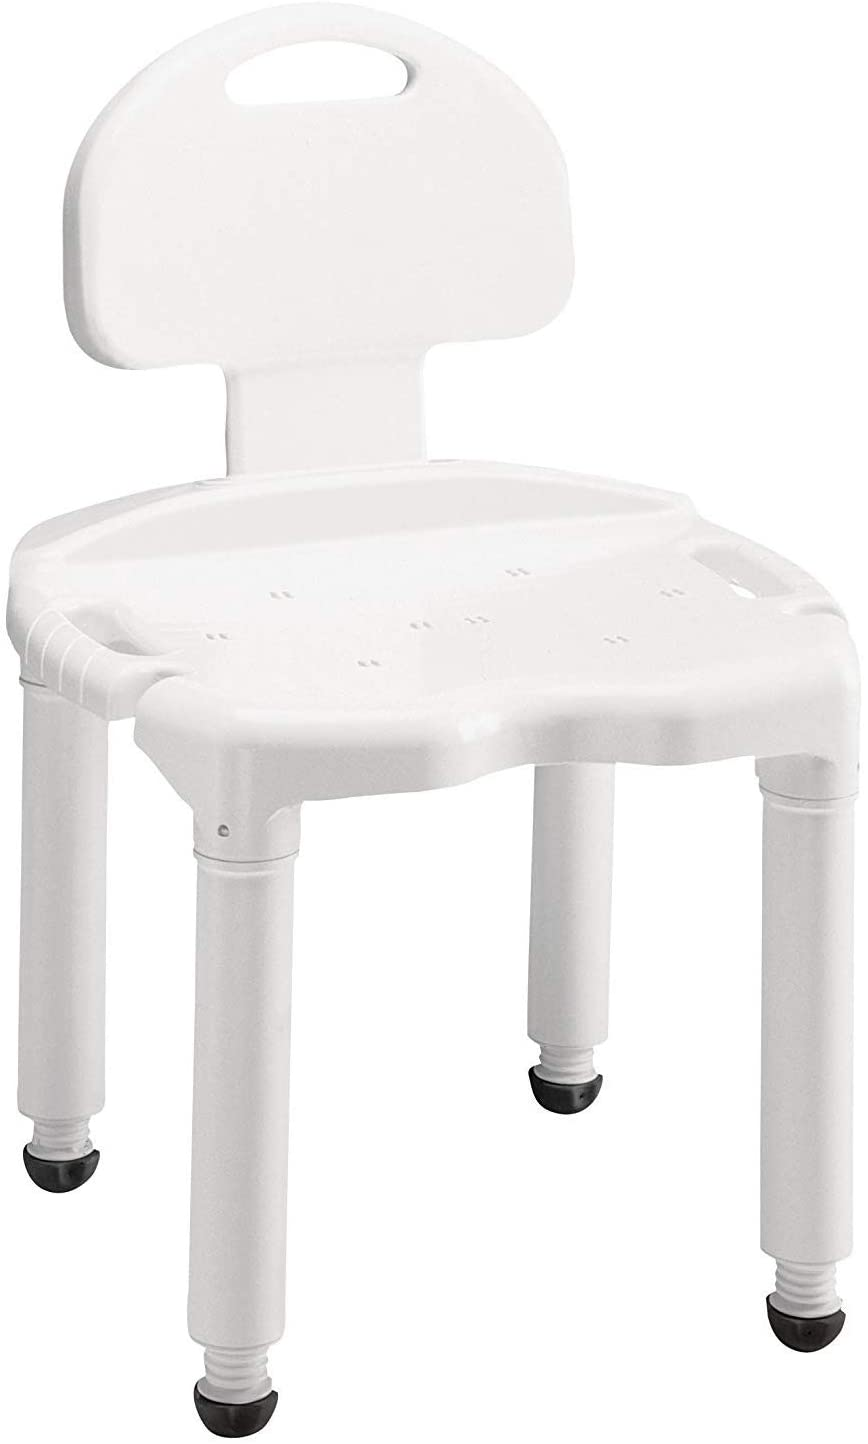 Carex Bath Seat And Shower Chair With Back For Seniors, Elderly,